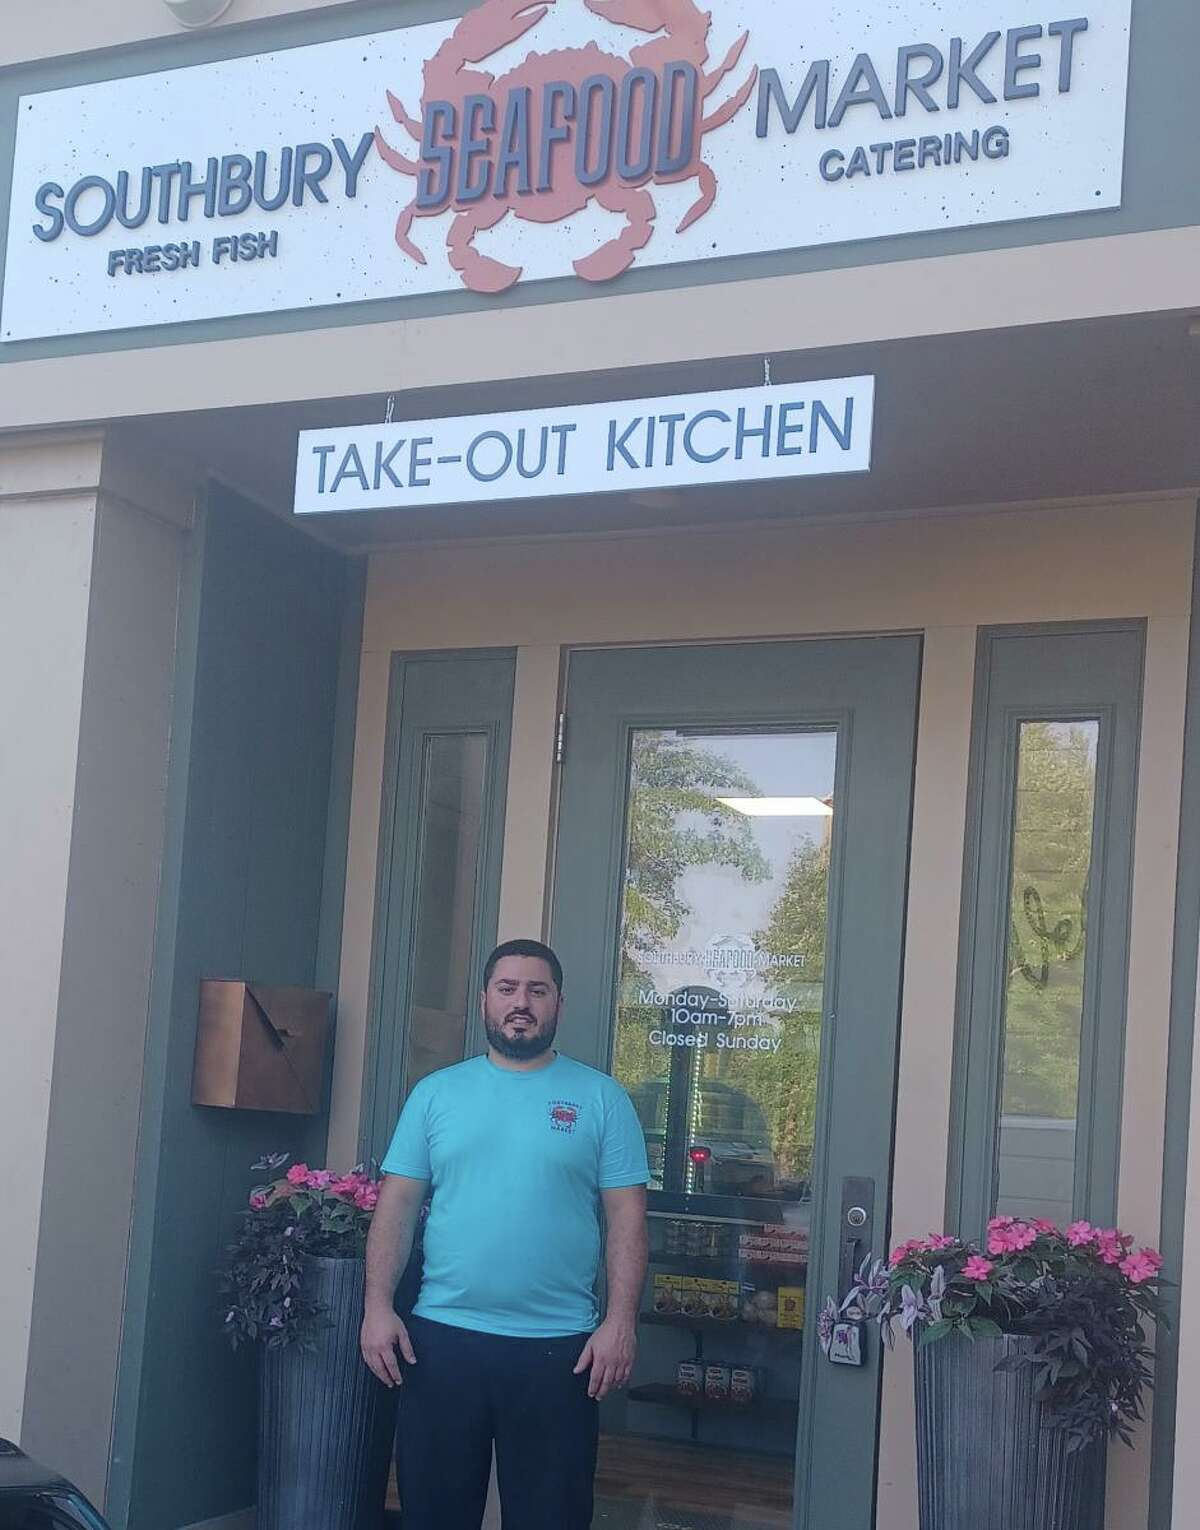 Roy Khalil, owner of the Southbury Seafood Market.